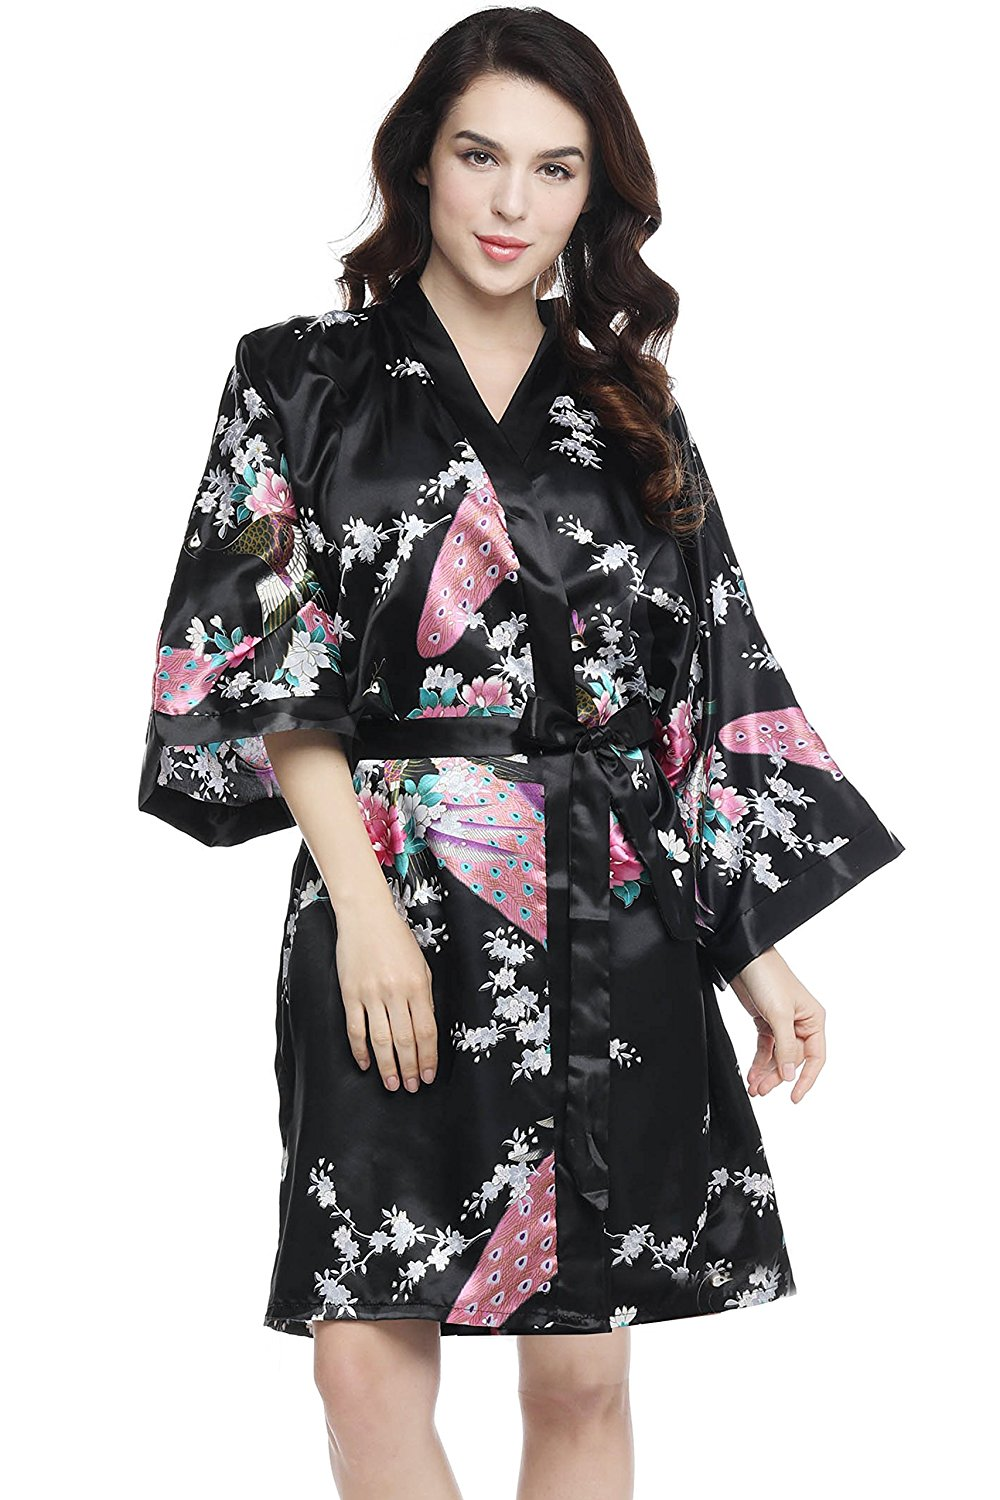 2b1c9cc8c1 Get Quotations · BABEYOND Women s Kimono Robe Short Robes With Peacock and  Blossoms Printed 1920s Style Kimono Nightgown Beach